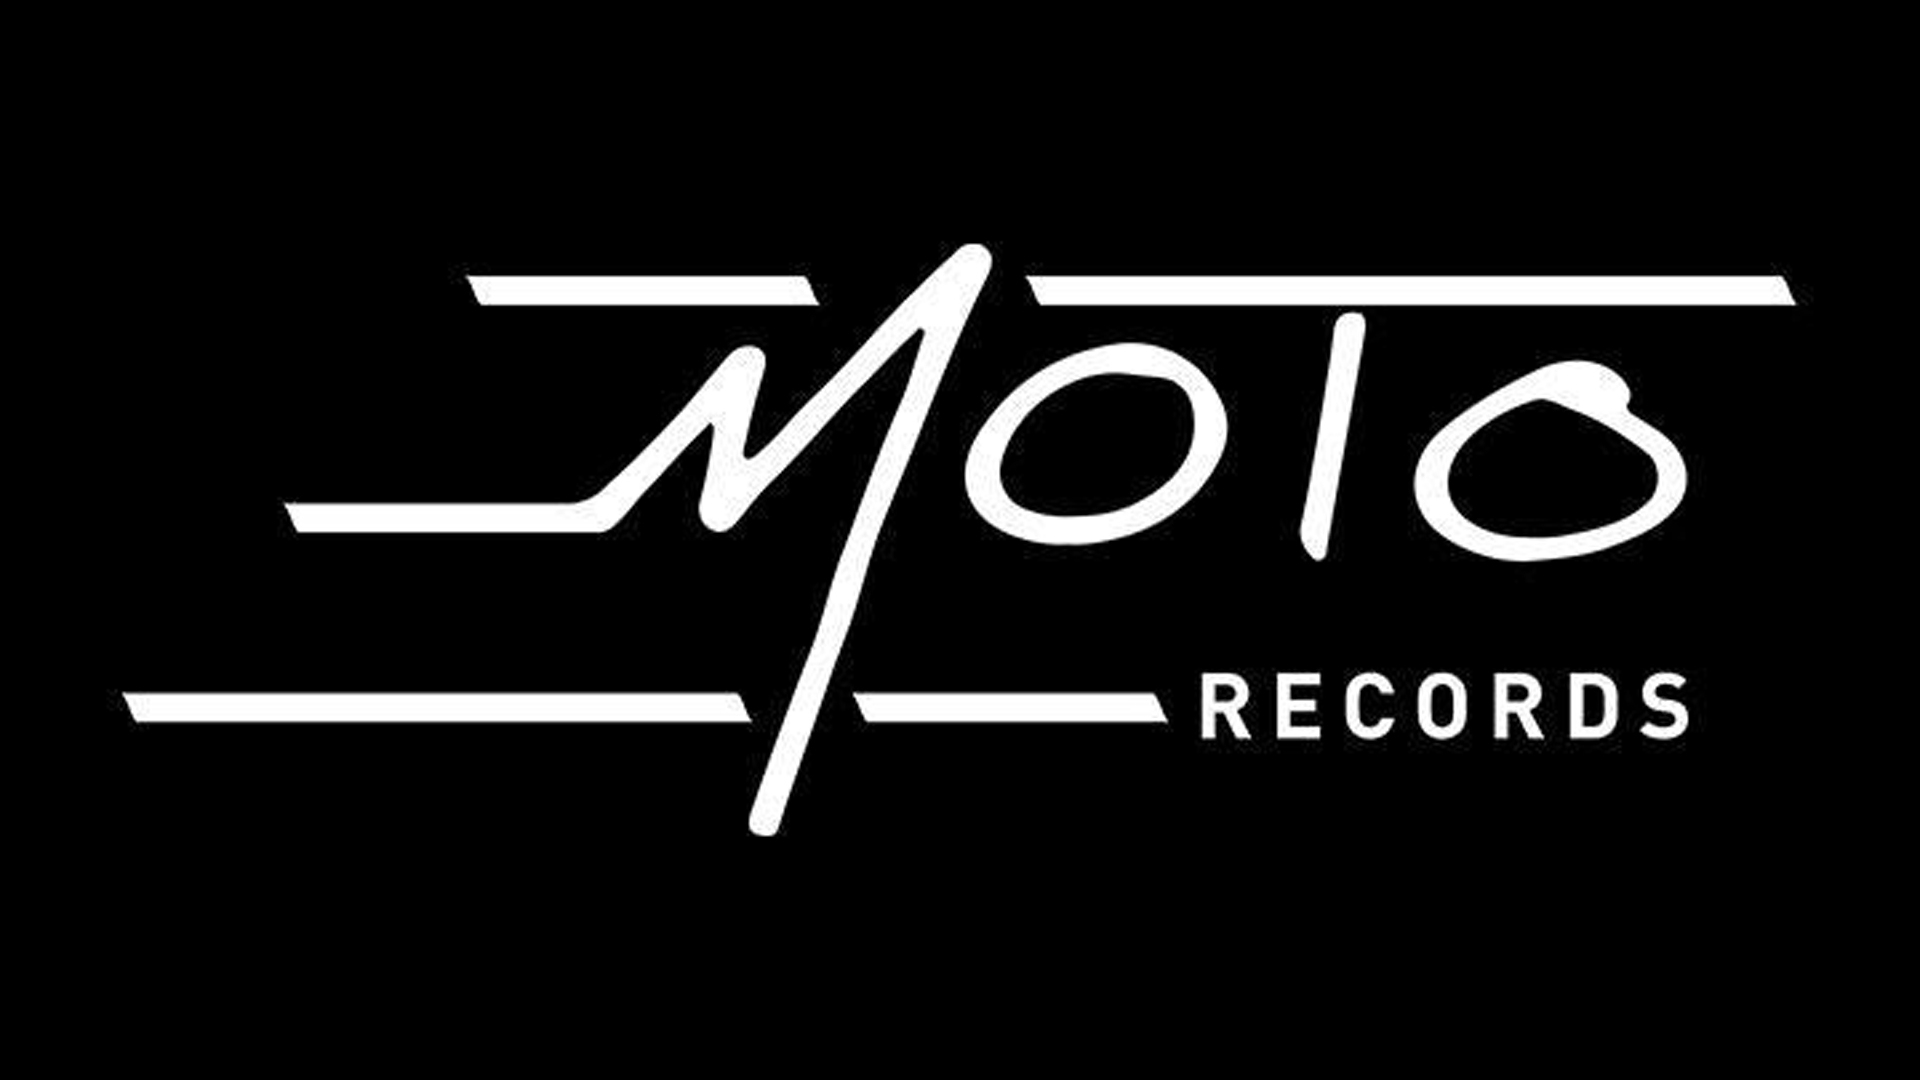 MOTO RECORDS (INTERVIEW WITH JOEY AFFATATO)    Record Label   Asbury Park, NJ   Posted February 13, 2018